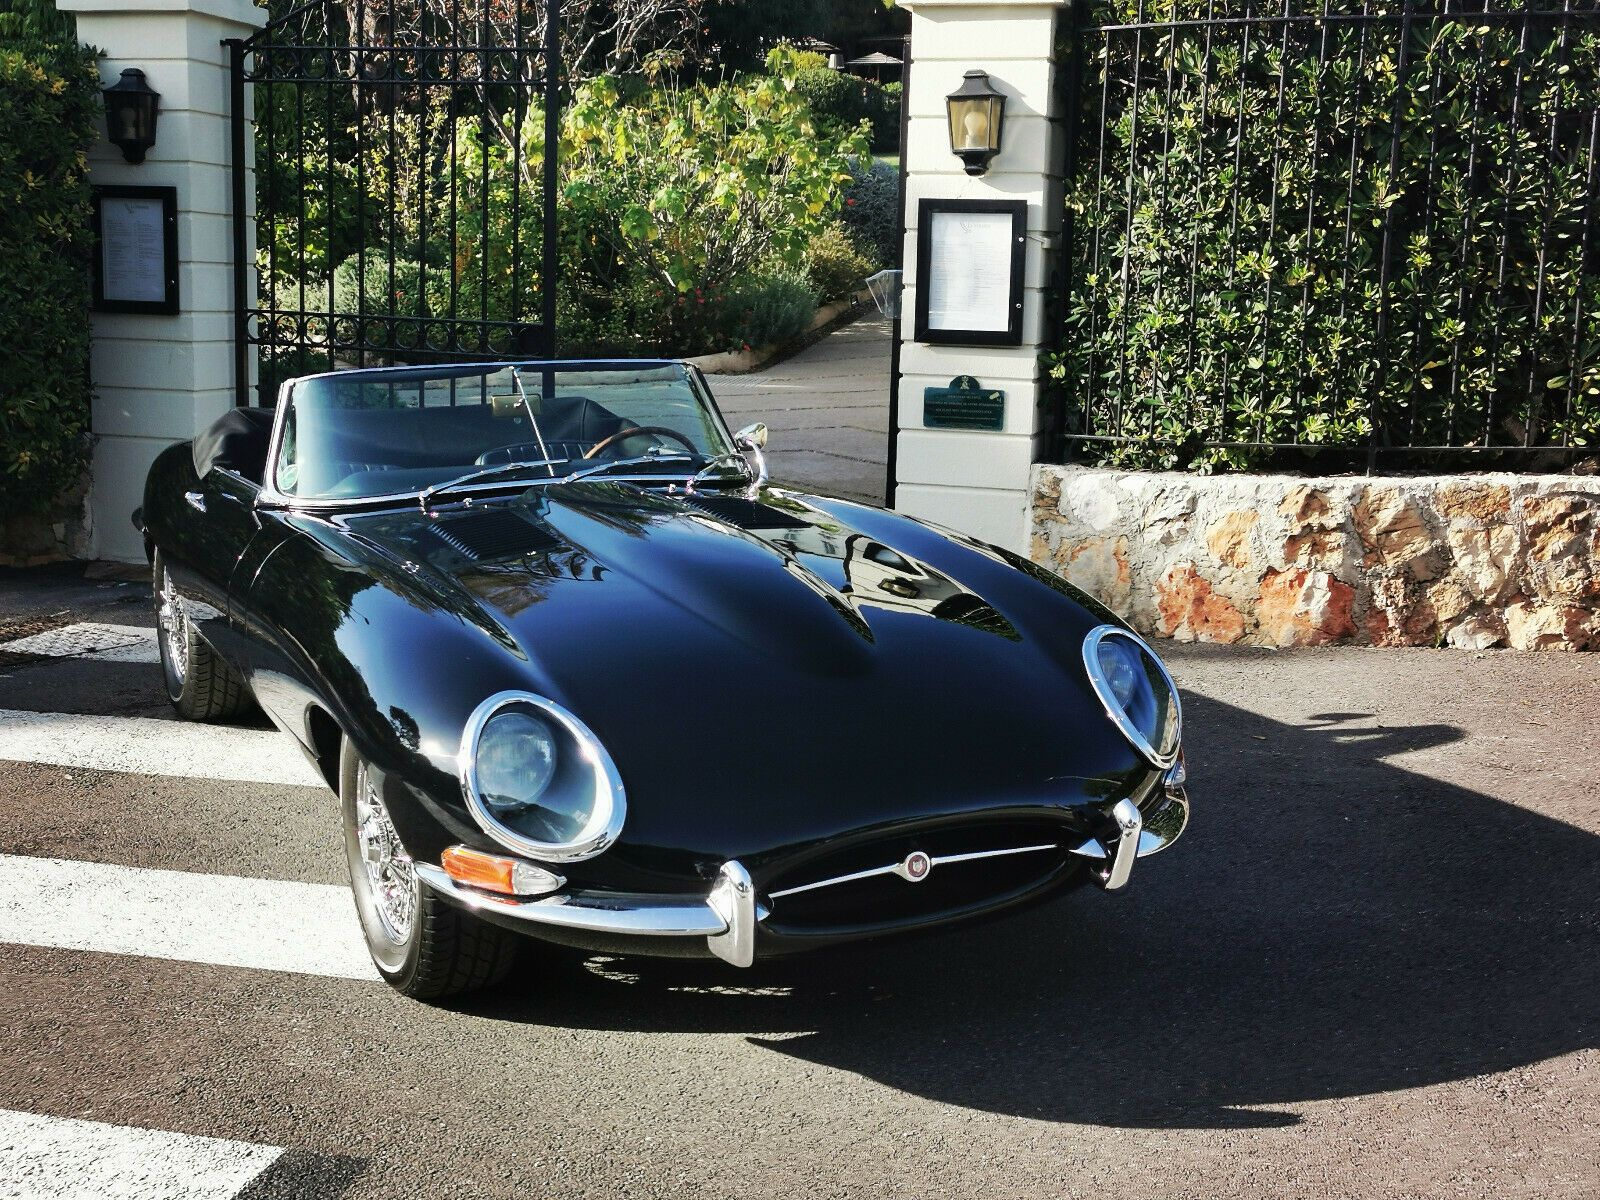 Used 1967 Jaguar E Type Jaguar E Type Roadster Xke Totally Restored 2020 Is In Stock And For Sale 24carshop Com Jaguar E Jaguar E Type Black Jaguar Car